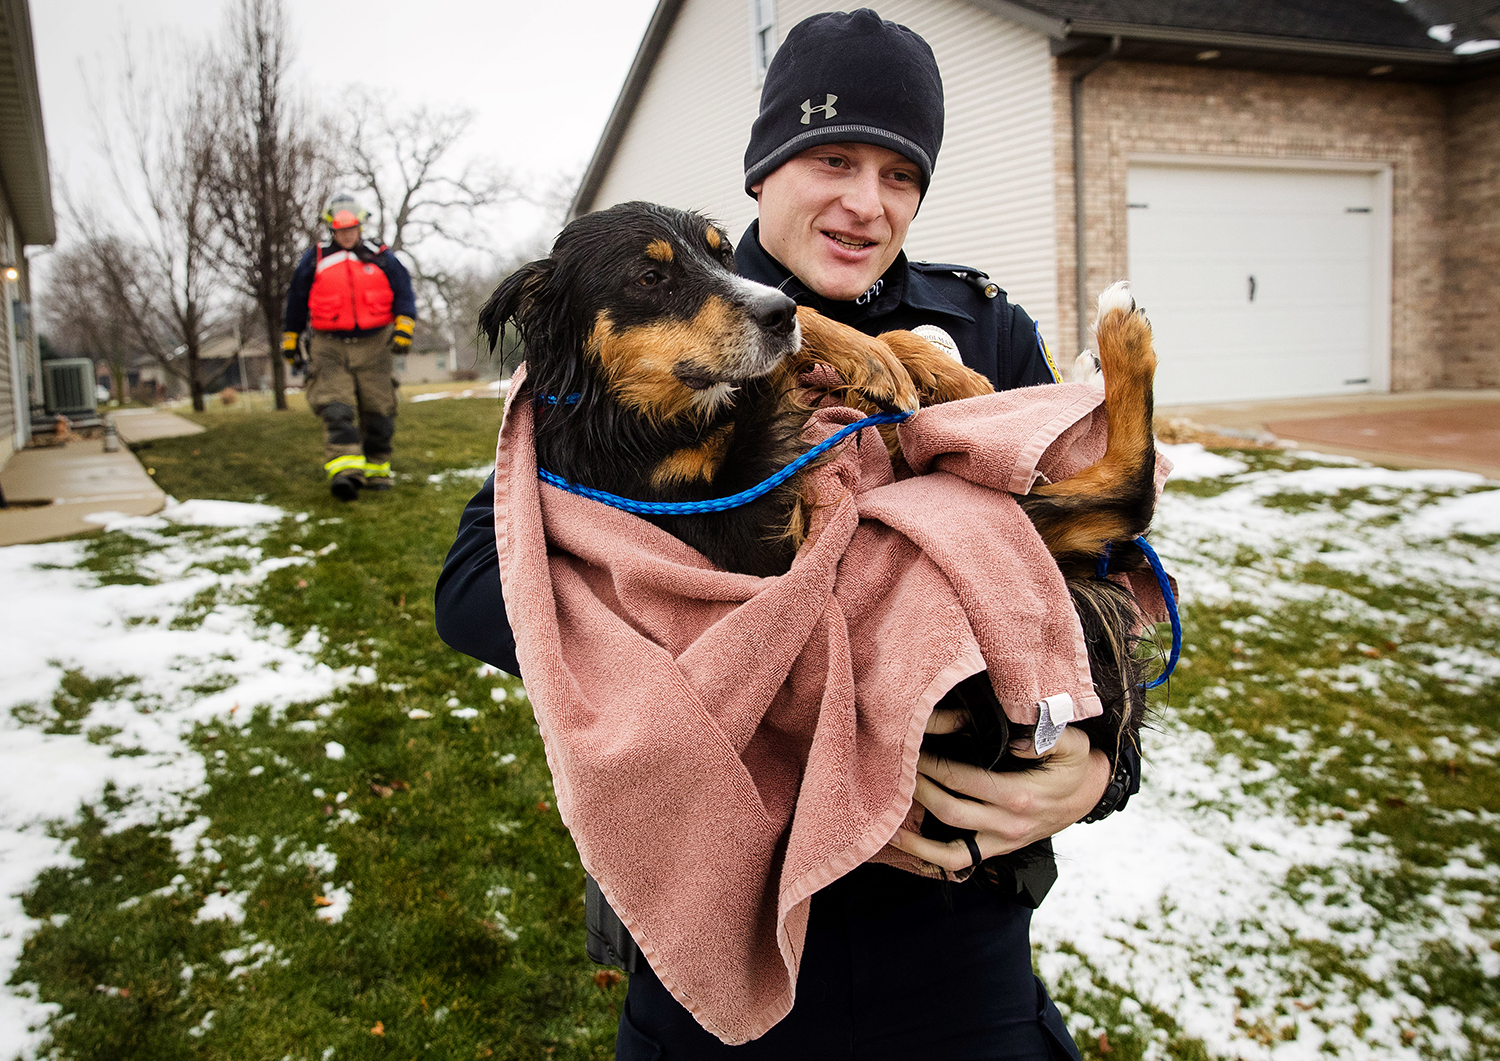 Chatham Police Officer Jacob Bouldin carries a dog that was rescued from an icy pond behind Turtle Cove in Chatham by Lauren Staab Monday, Jan. 8, 2018. Staab used a plastic boat to make her way to the dog and scoop him up before getting him inside to warm up. [Ted Schurter/The State Journal-Register]